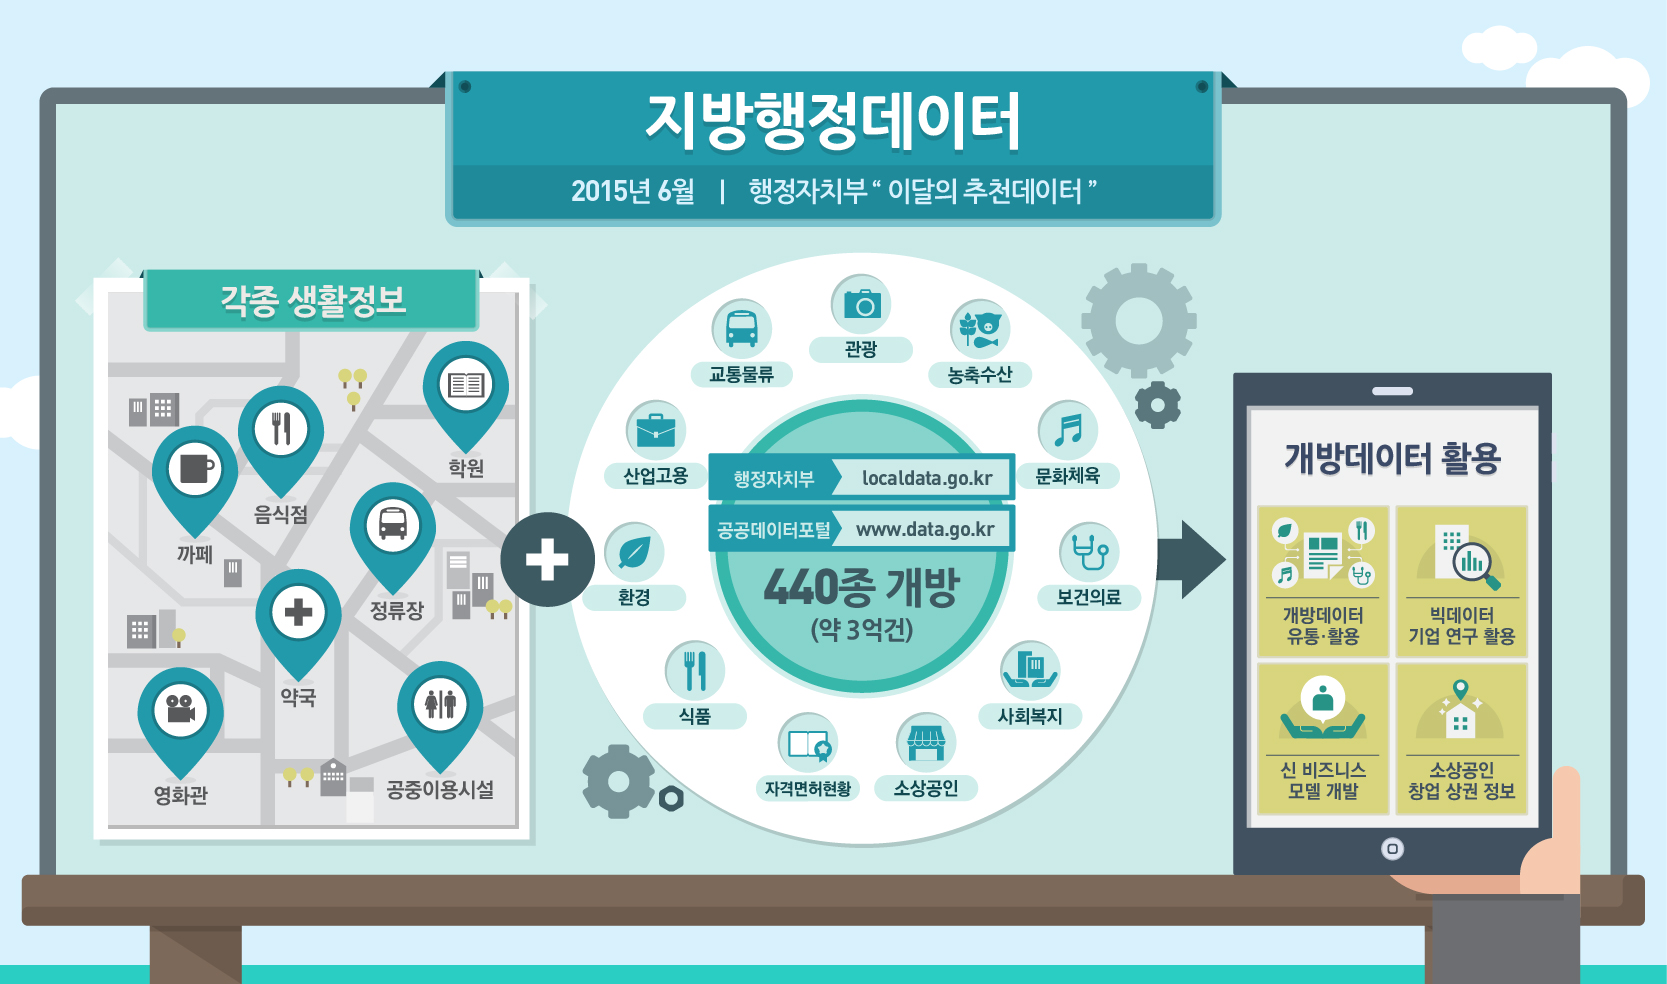 https://www.data.go.kr/comm/file/imgDownload.do?name=1435730685926-9db14124-4183-4d66-8e69-7f0834f7c985